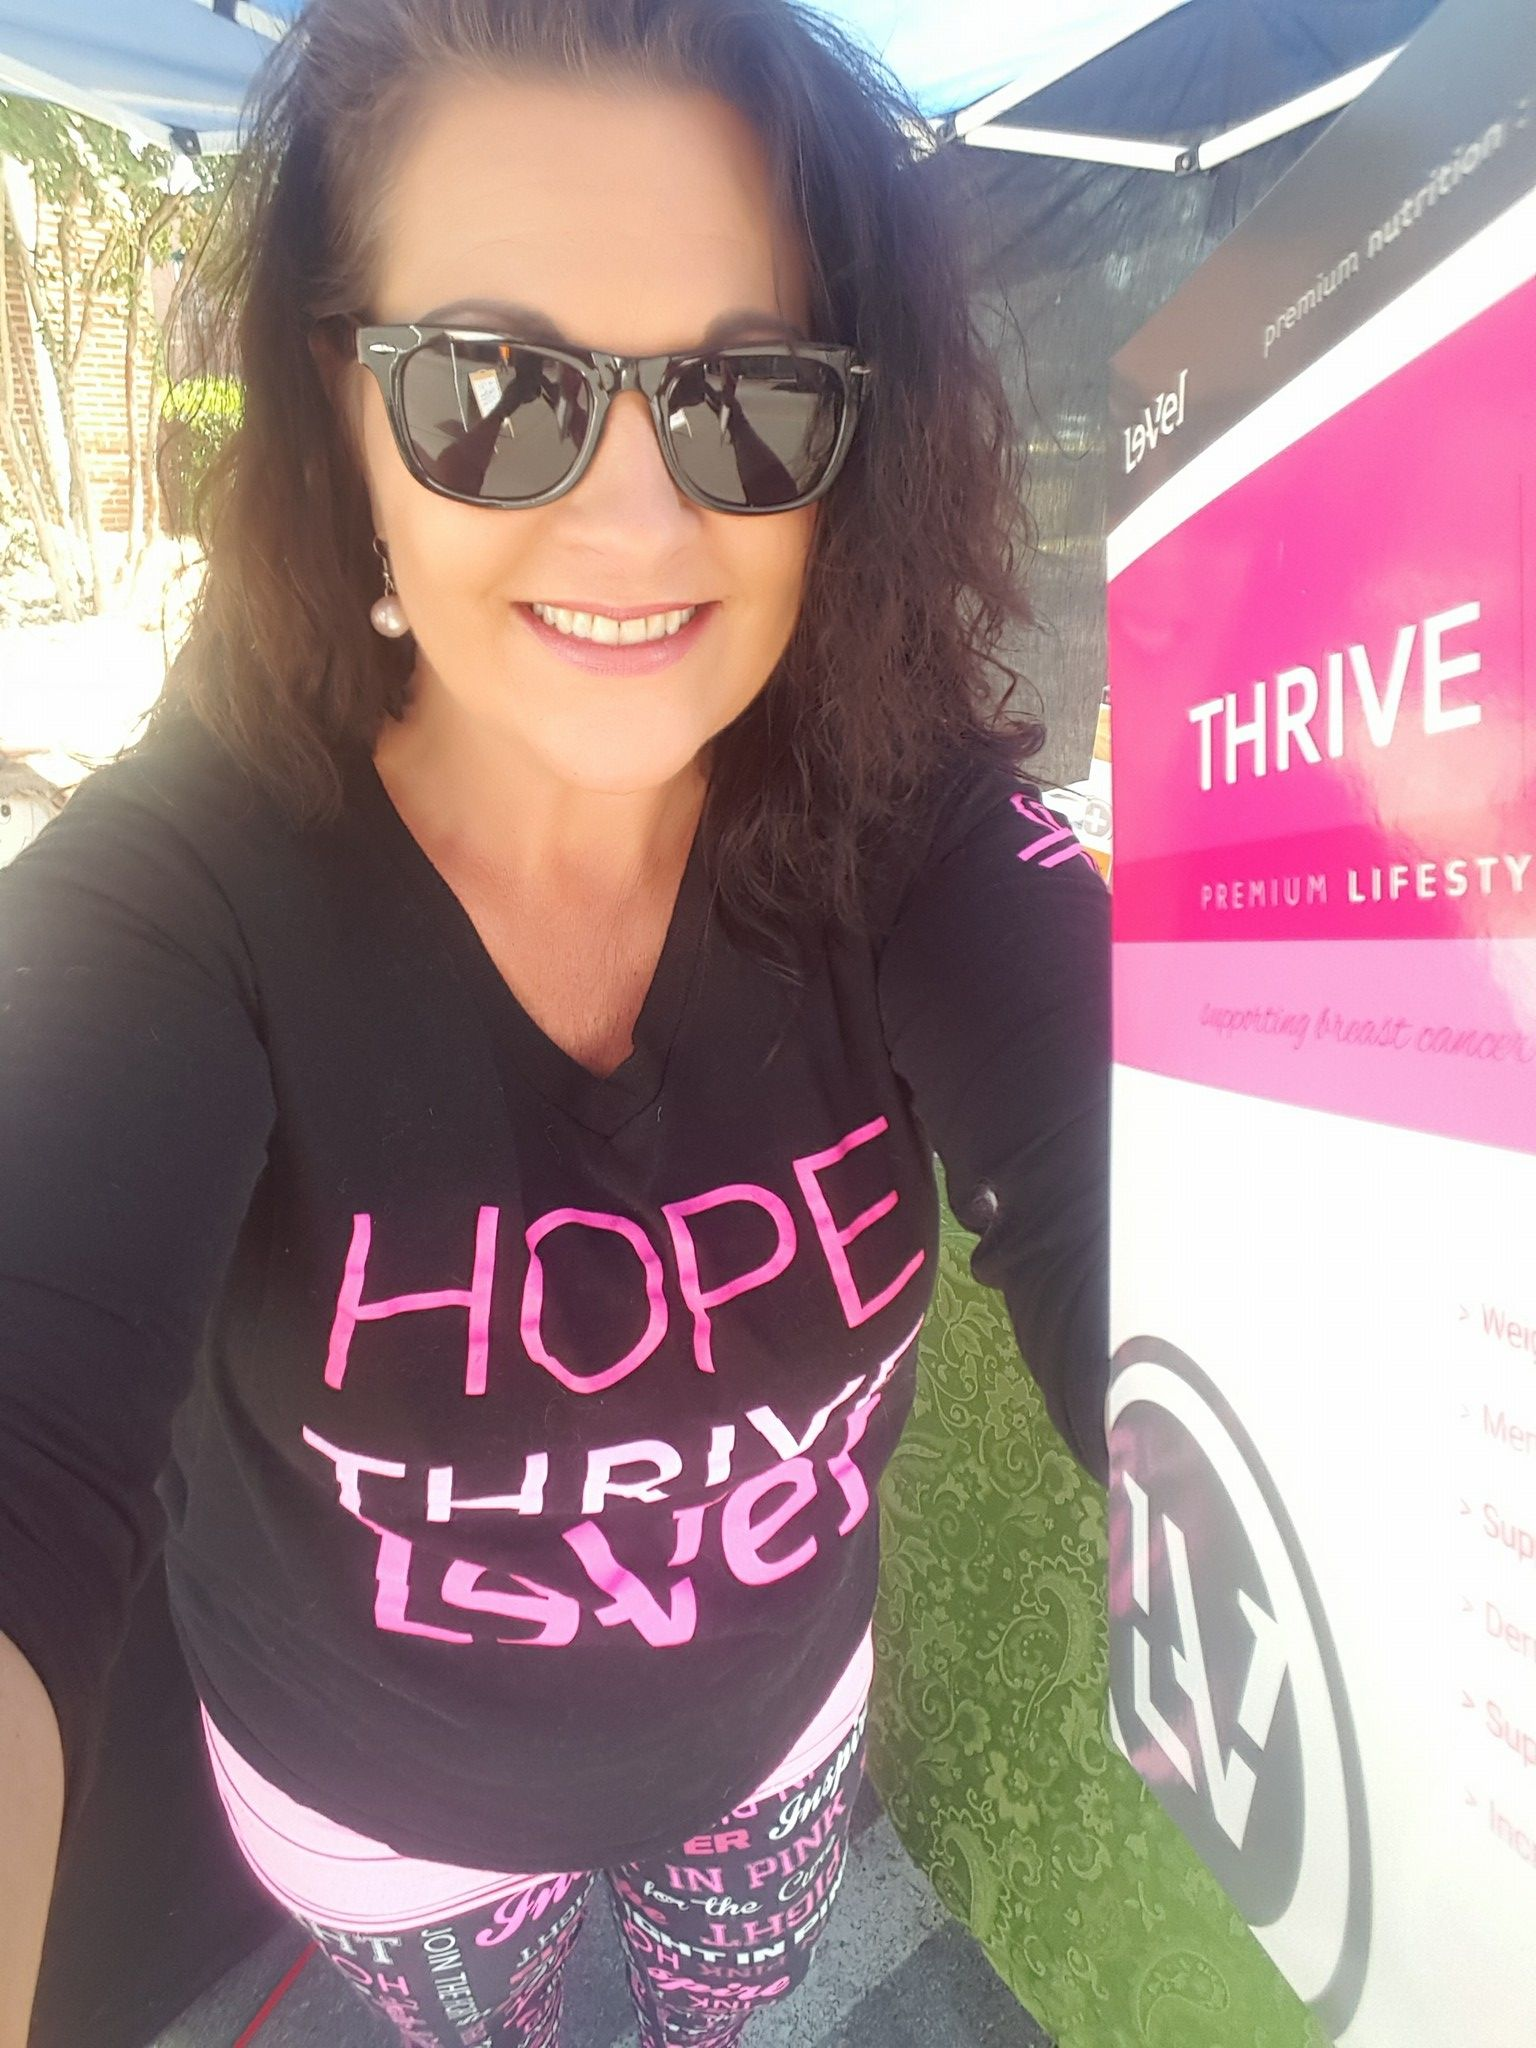 Love my Breast Cancer Awareness attire!  I love sharing Thrive with everyone and love even more that LeVel gives back to these amazing causes! #Thrive4Pink #NBCF #DFT